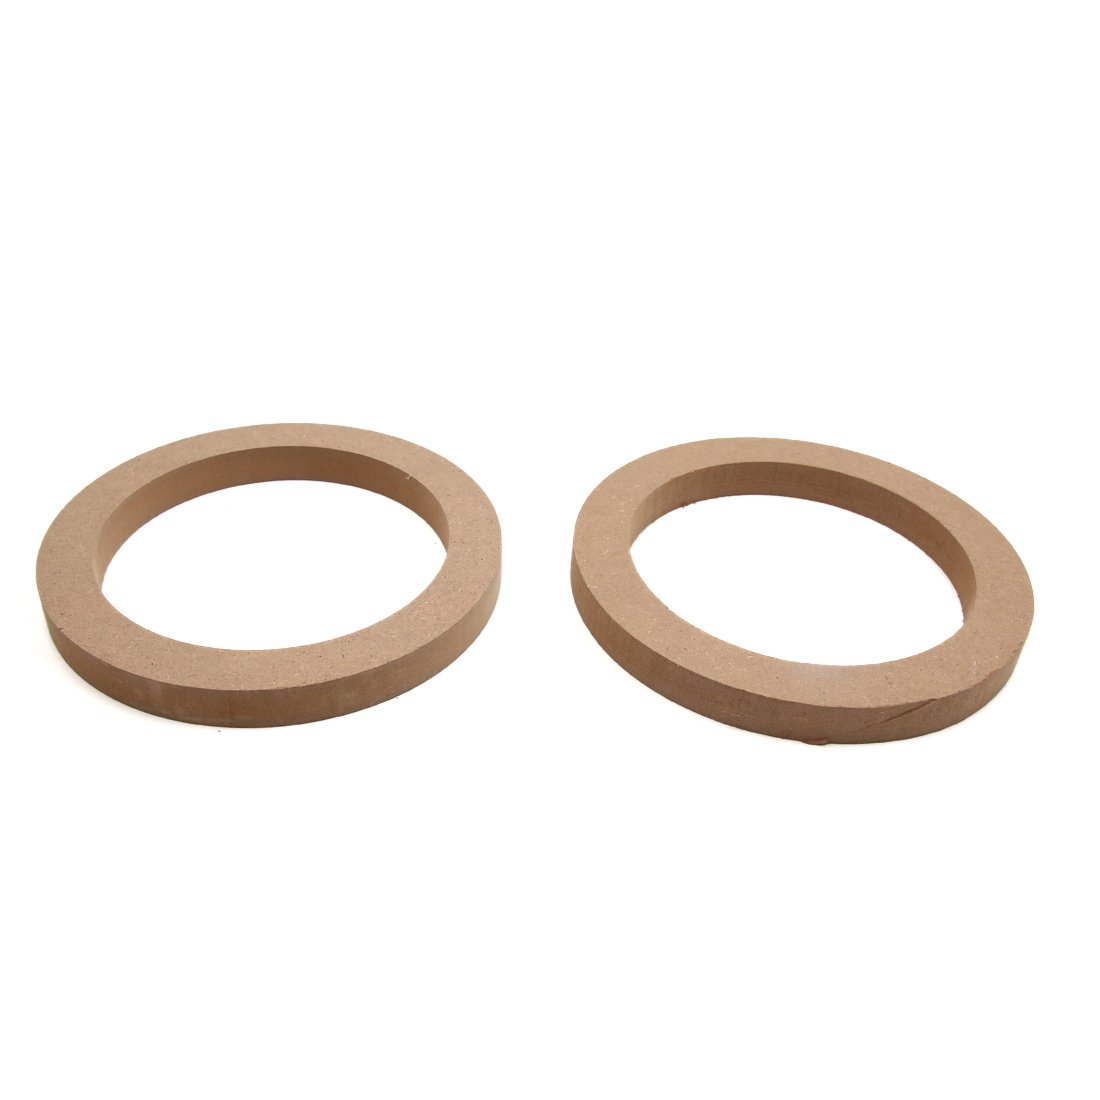 uxcell 2pcs Universal Brown 7.5'' Car Stereo Audio Speaker Mounting Spacer Rings Bracket